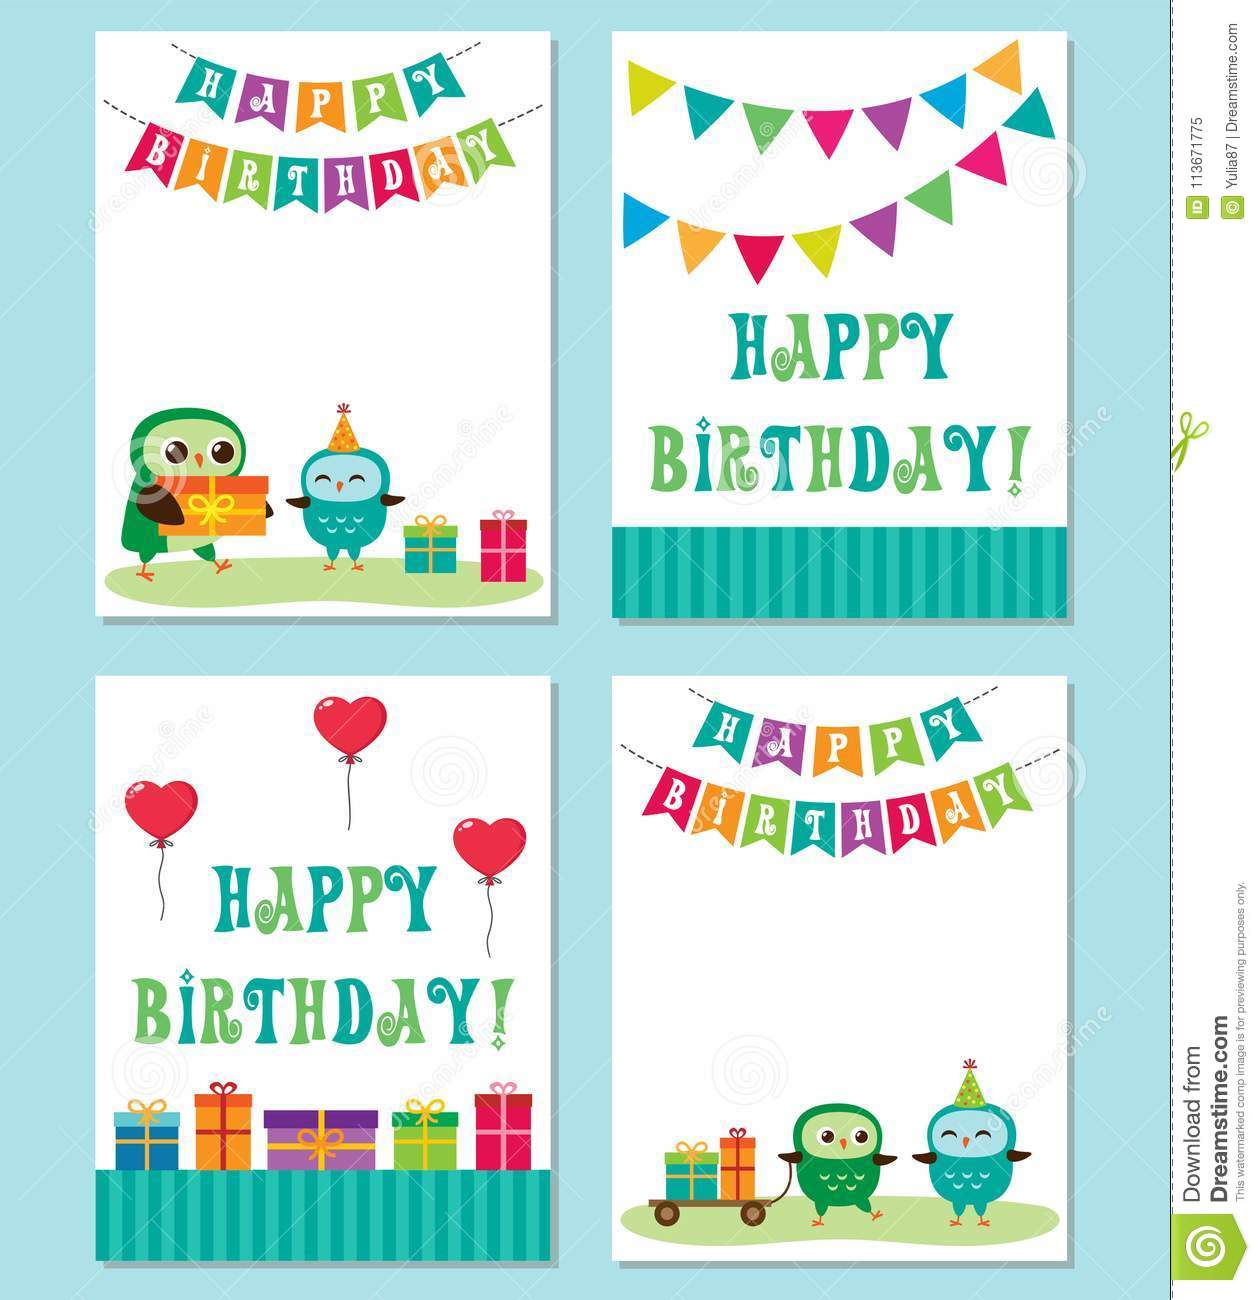 Birthday Cards With Cute Owls Vector Editable Templates For Party Invitation Or Postcard In Blue Color